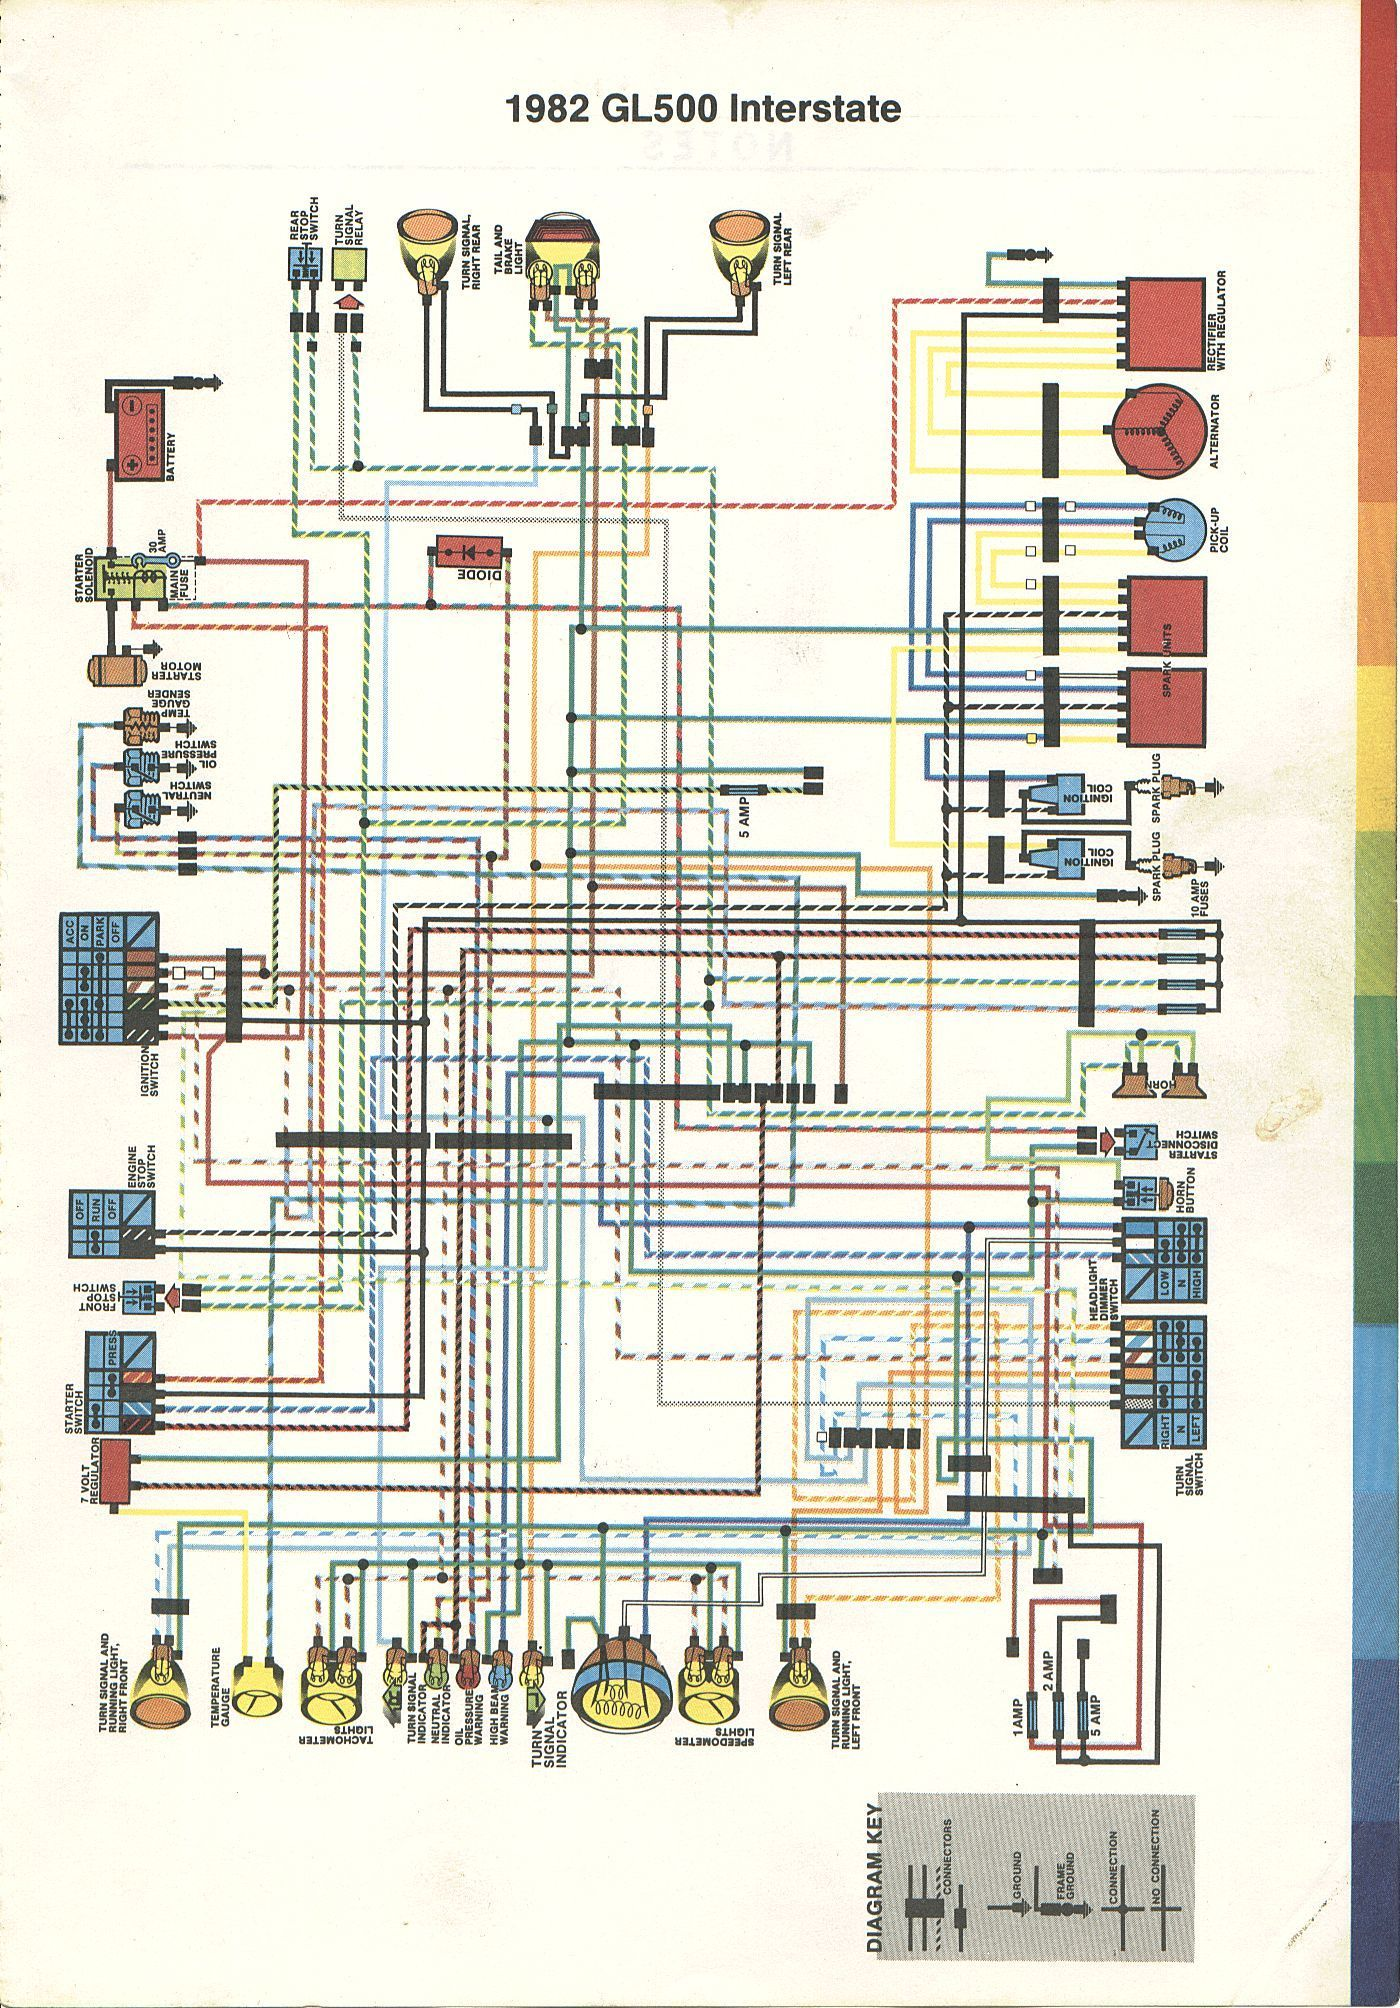 Wiring Diagram 1979 Honda Cx500 Explained Diagrams S65 Pdf Circuit And Hub U2022